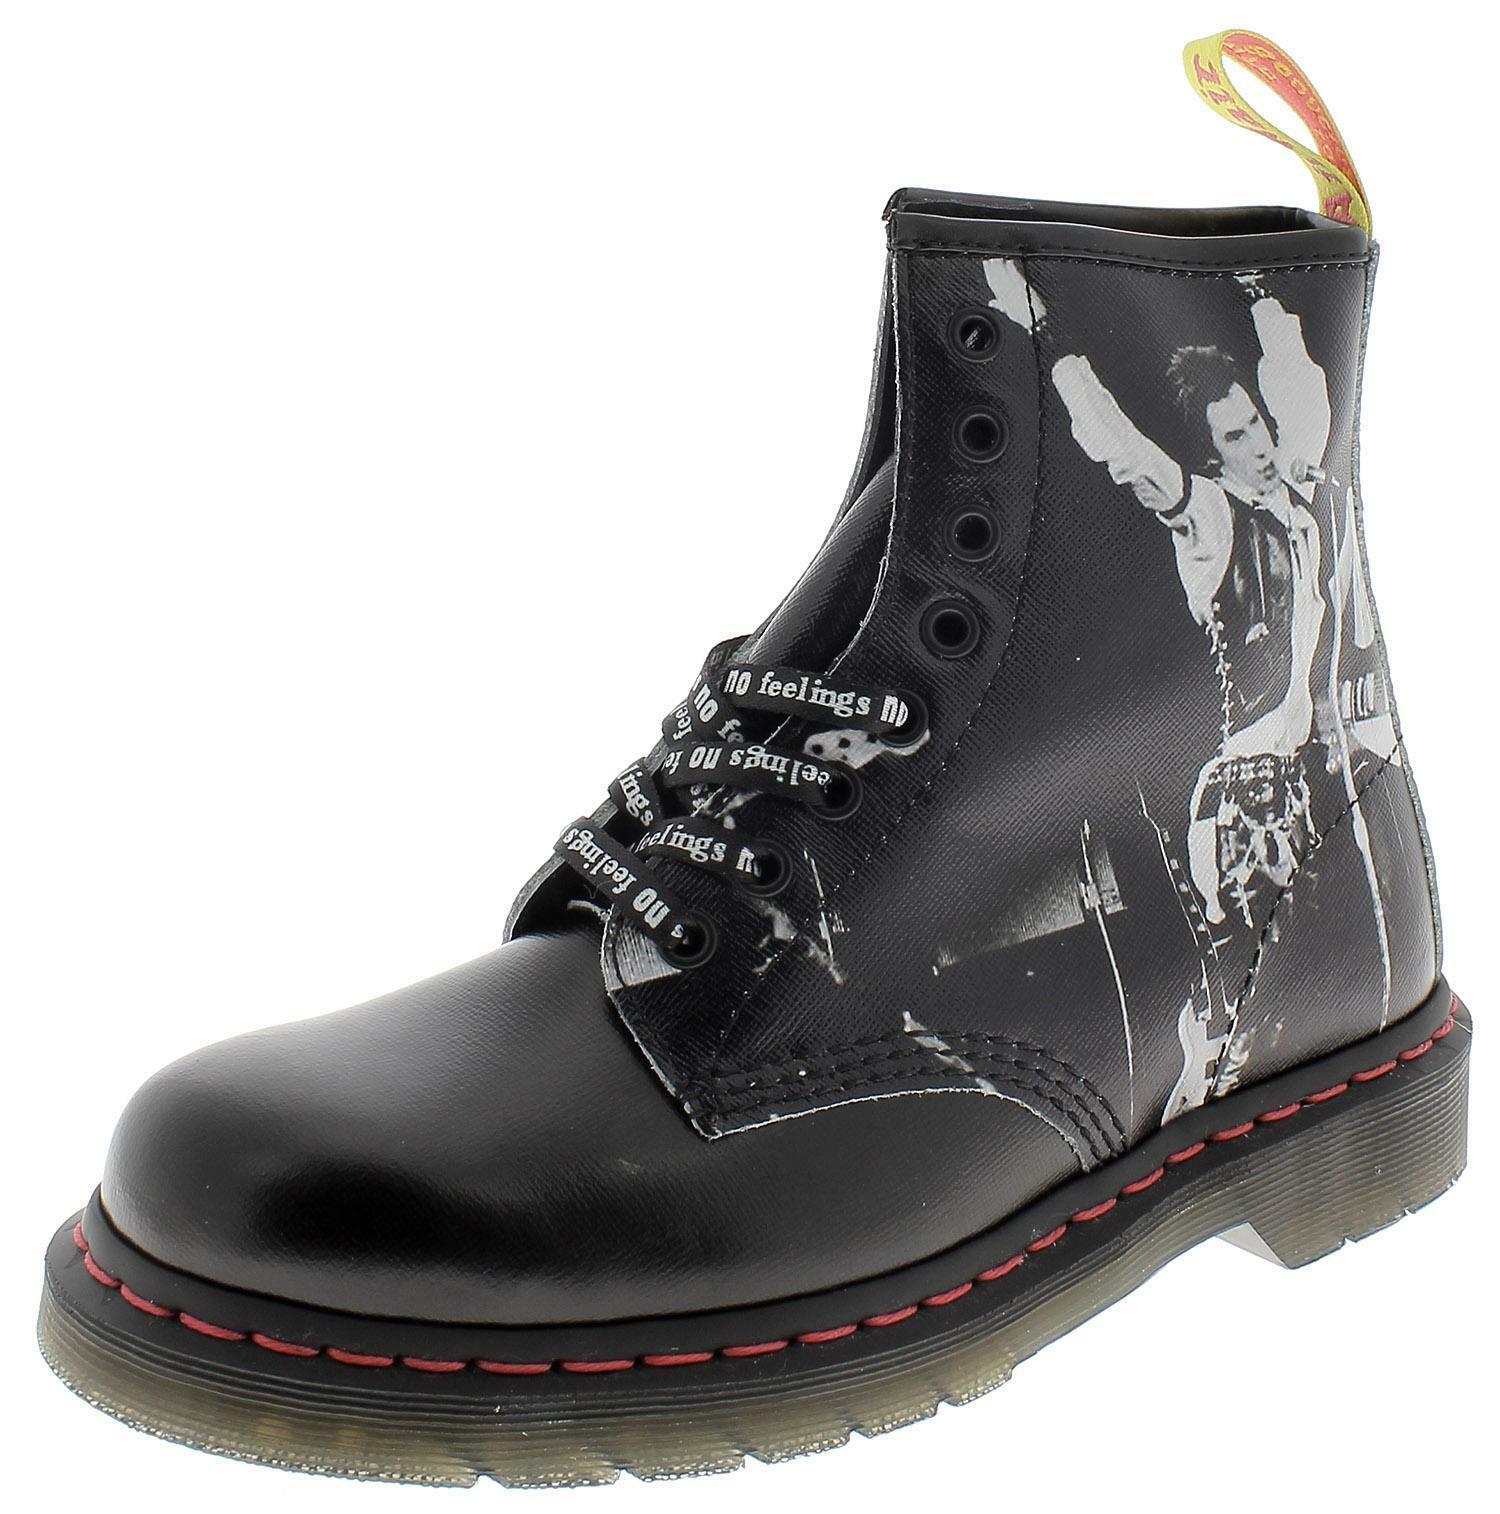 official photos fbe27 7b5b0 Dr. martens 1460 sex pistols scarponcini donna neri 24789001